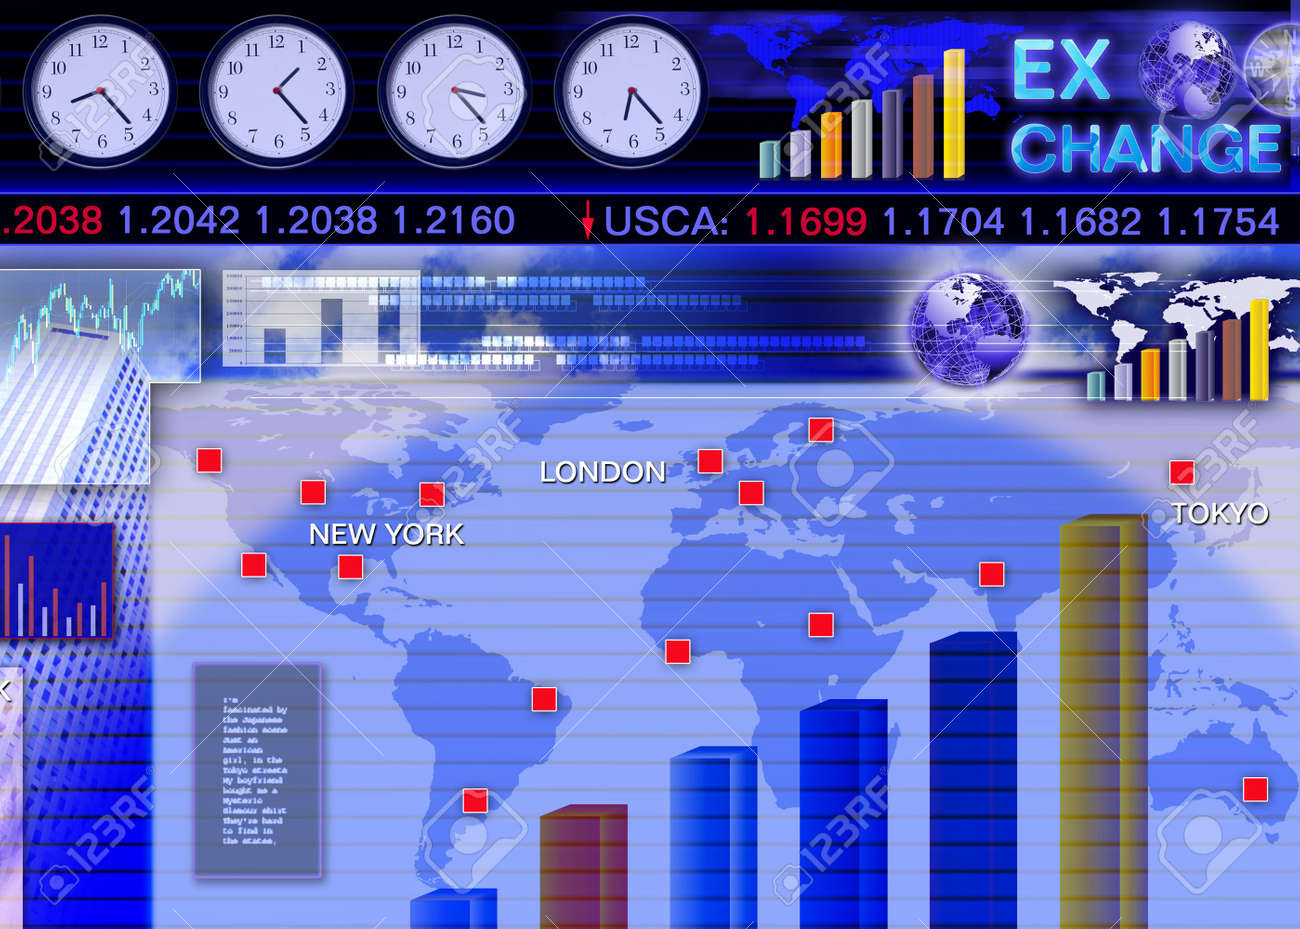 Currency currency forex forex learn online online trading uk